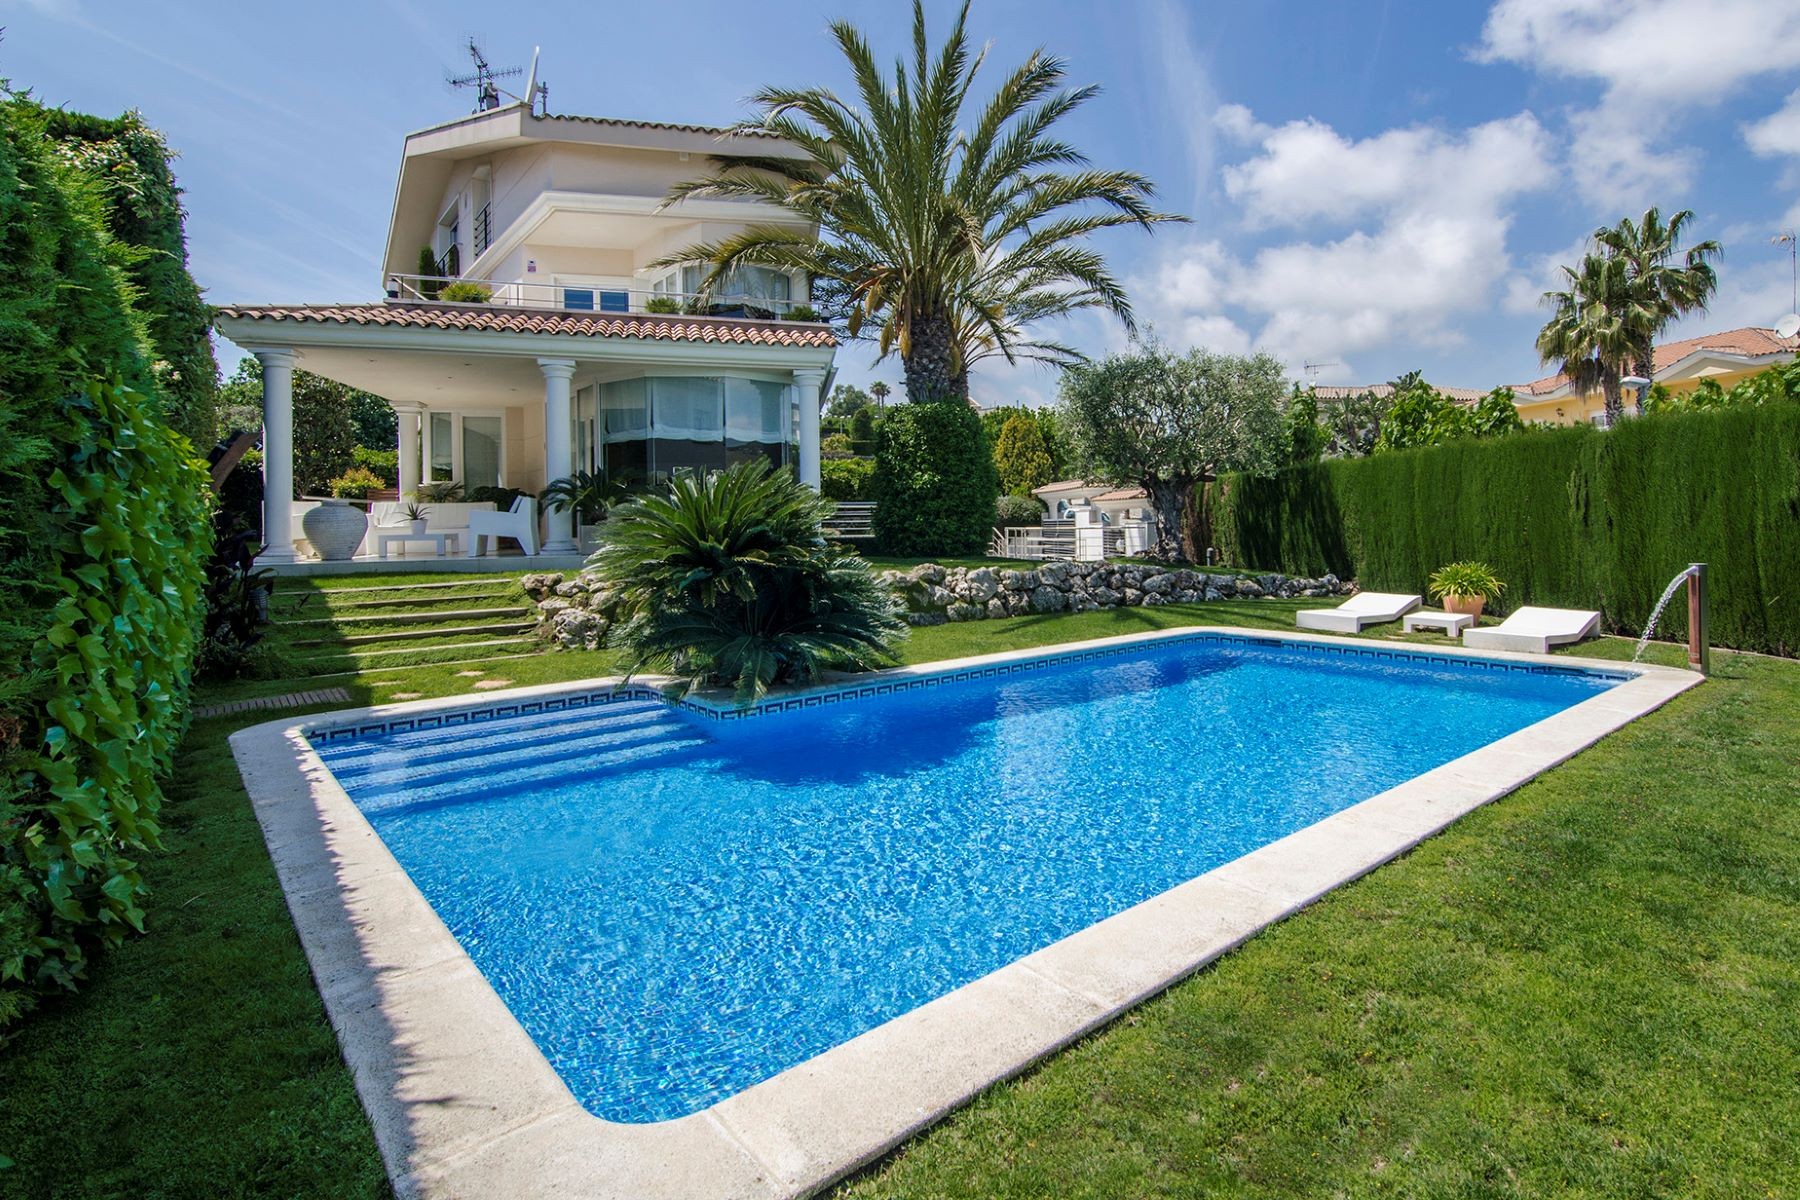 Single Family Home for Sale at Luxury, design and functionality in Alella Alella, Barcelona, 08328 Spain